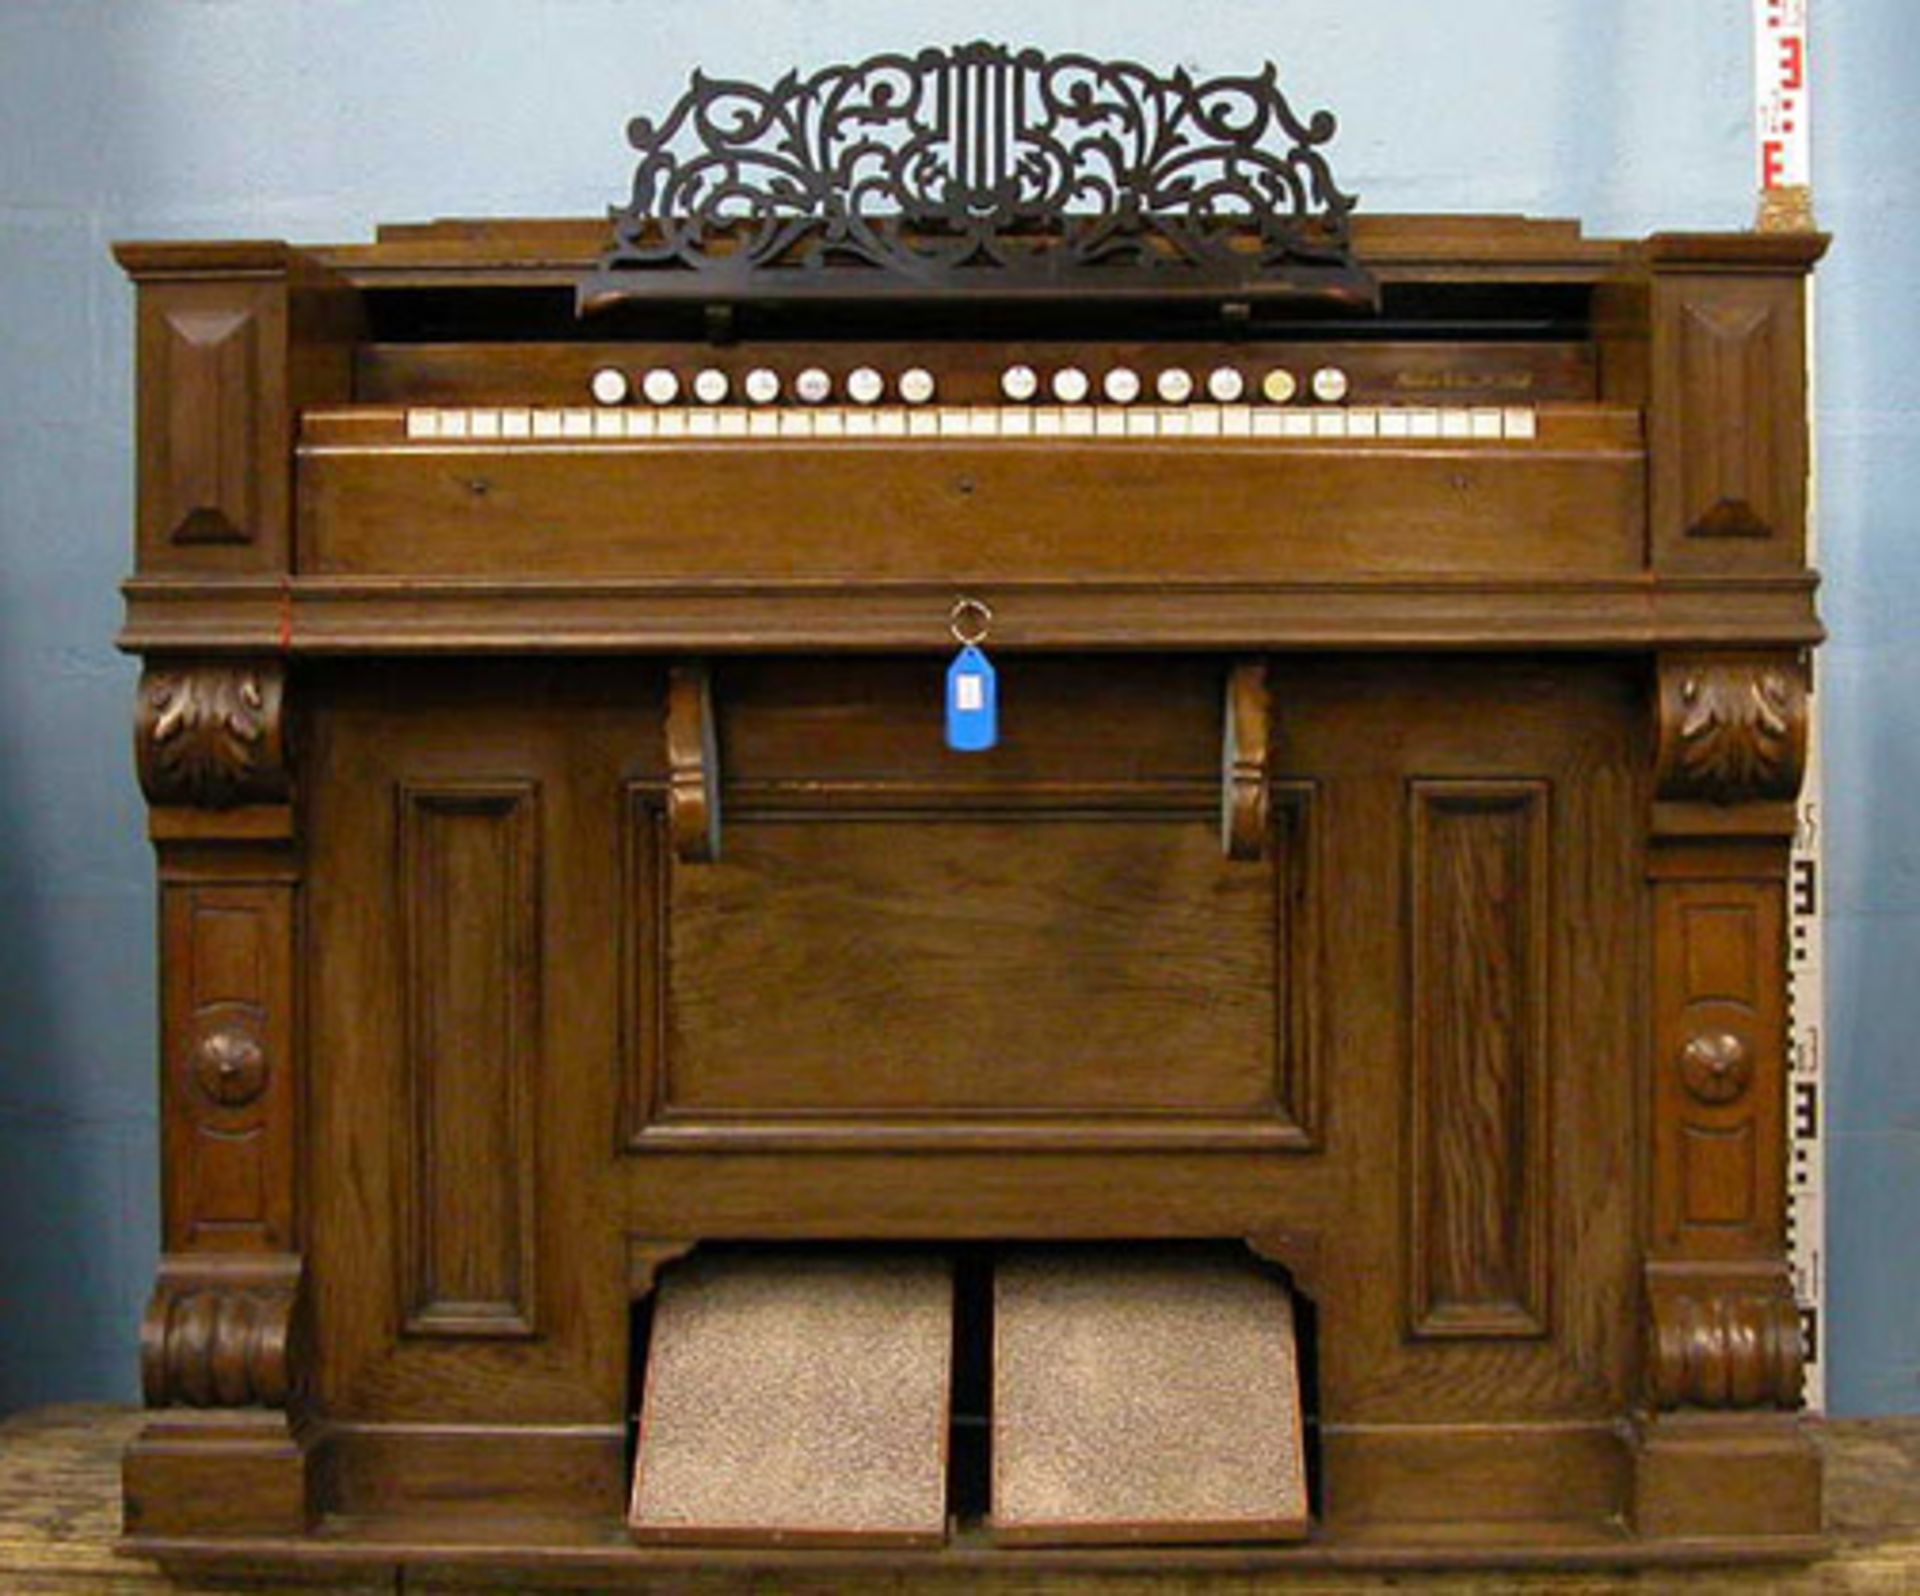 Los 41 - *FRENCH REED ORGAN, FULLY RESTORED, EARLY 1900S. HEIGHT 995MM (39.5IN) X WIDTH 1280MM (50.25IN) X